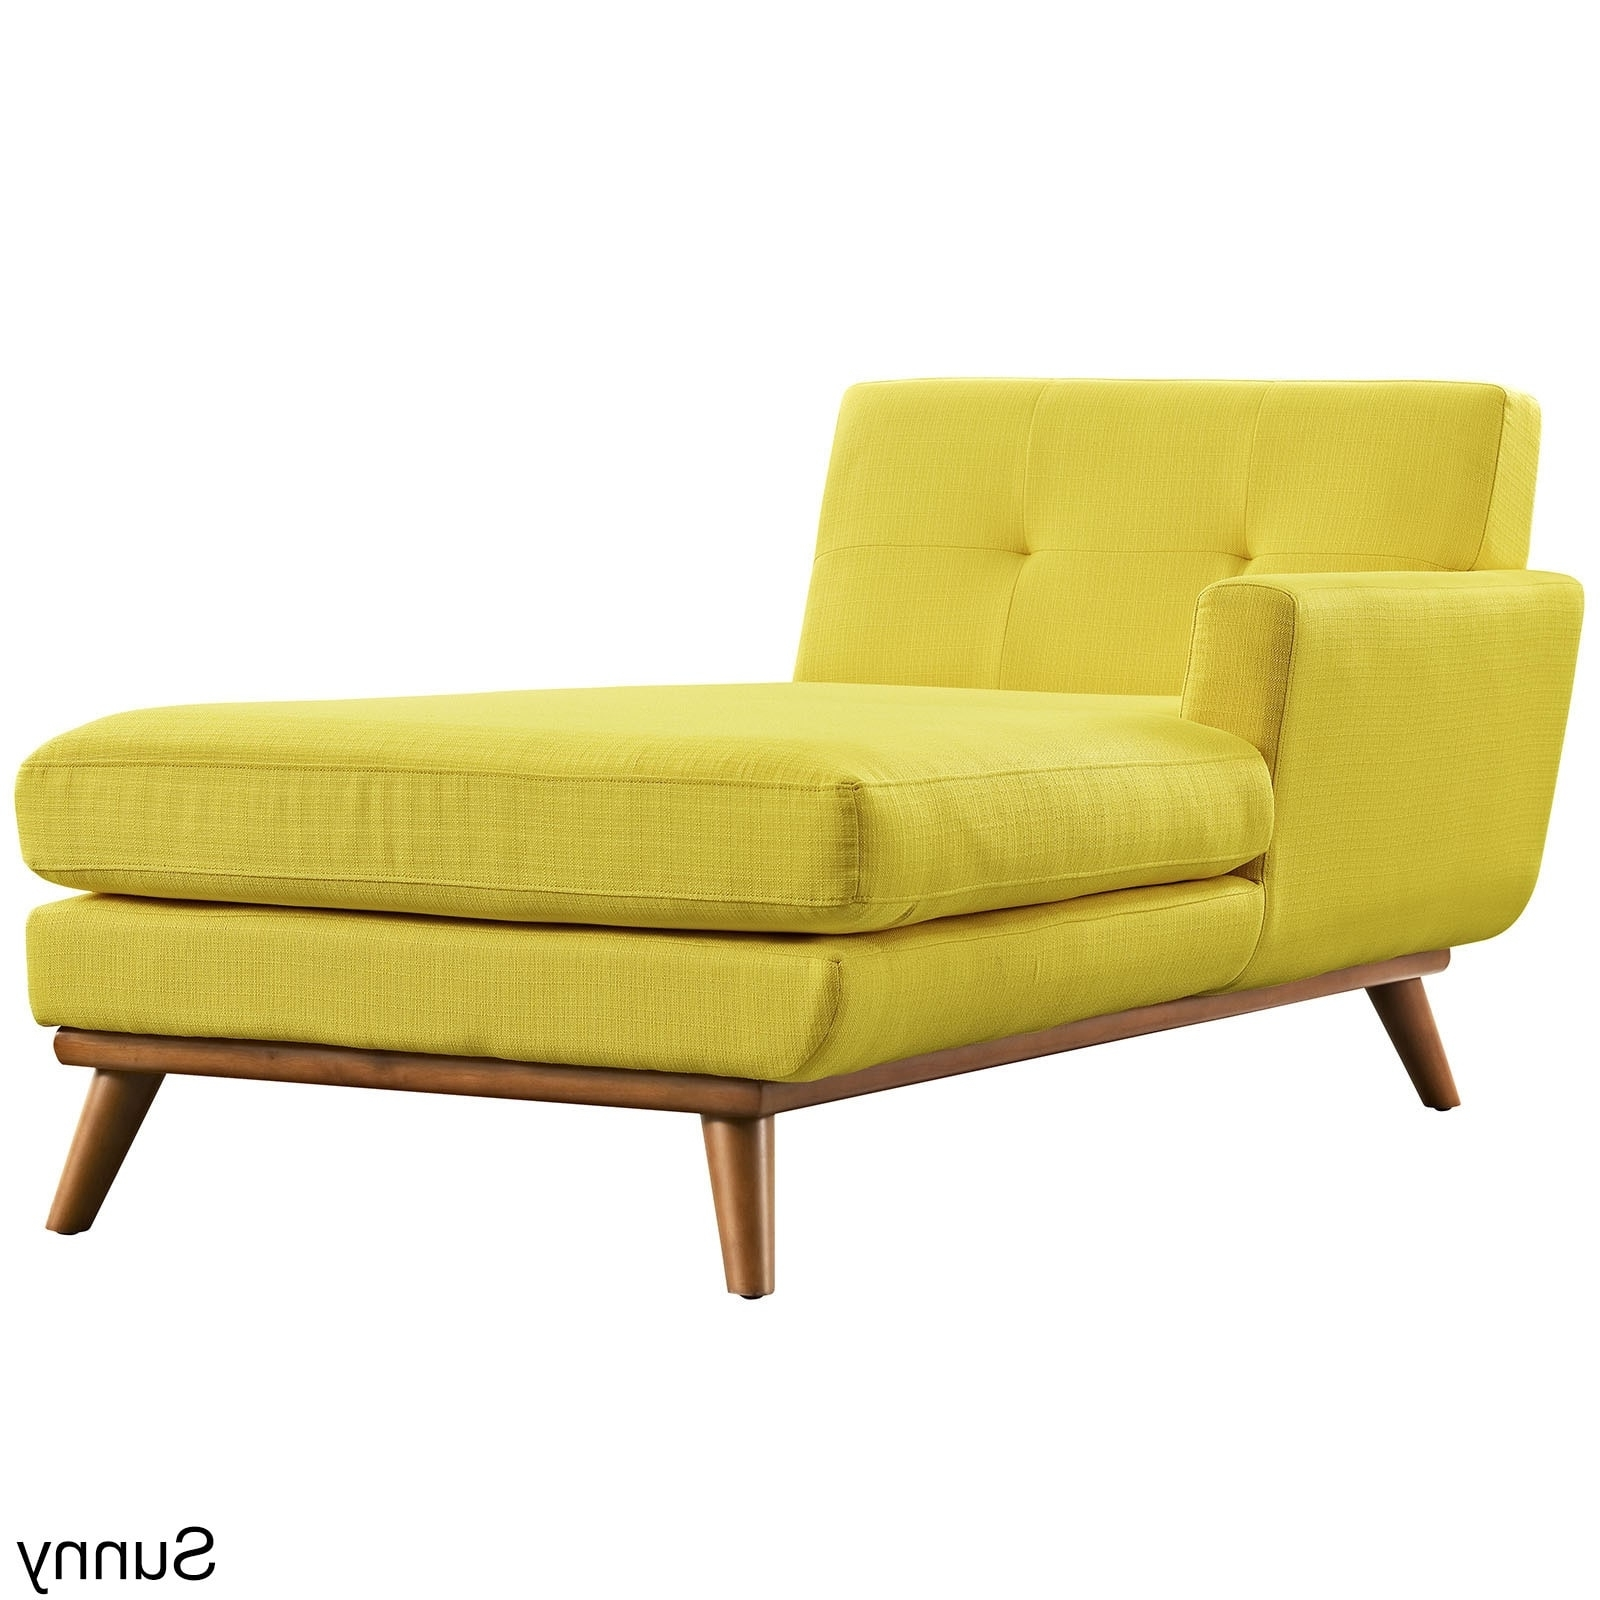 Engage Left Arm Mid Century Chaise Lounge – Free Shipping Today Intended For Most Current Mid Century Chaises (View 4 of 15)